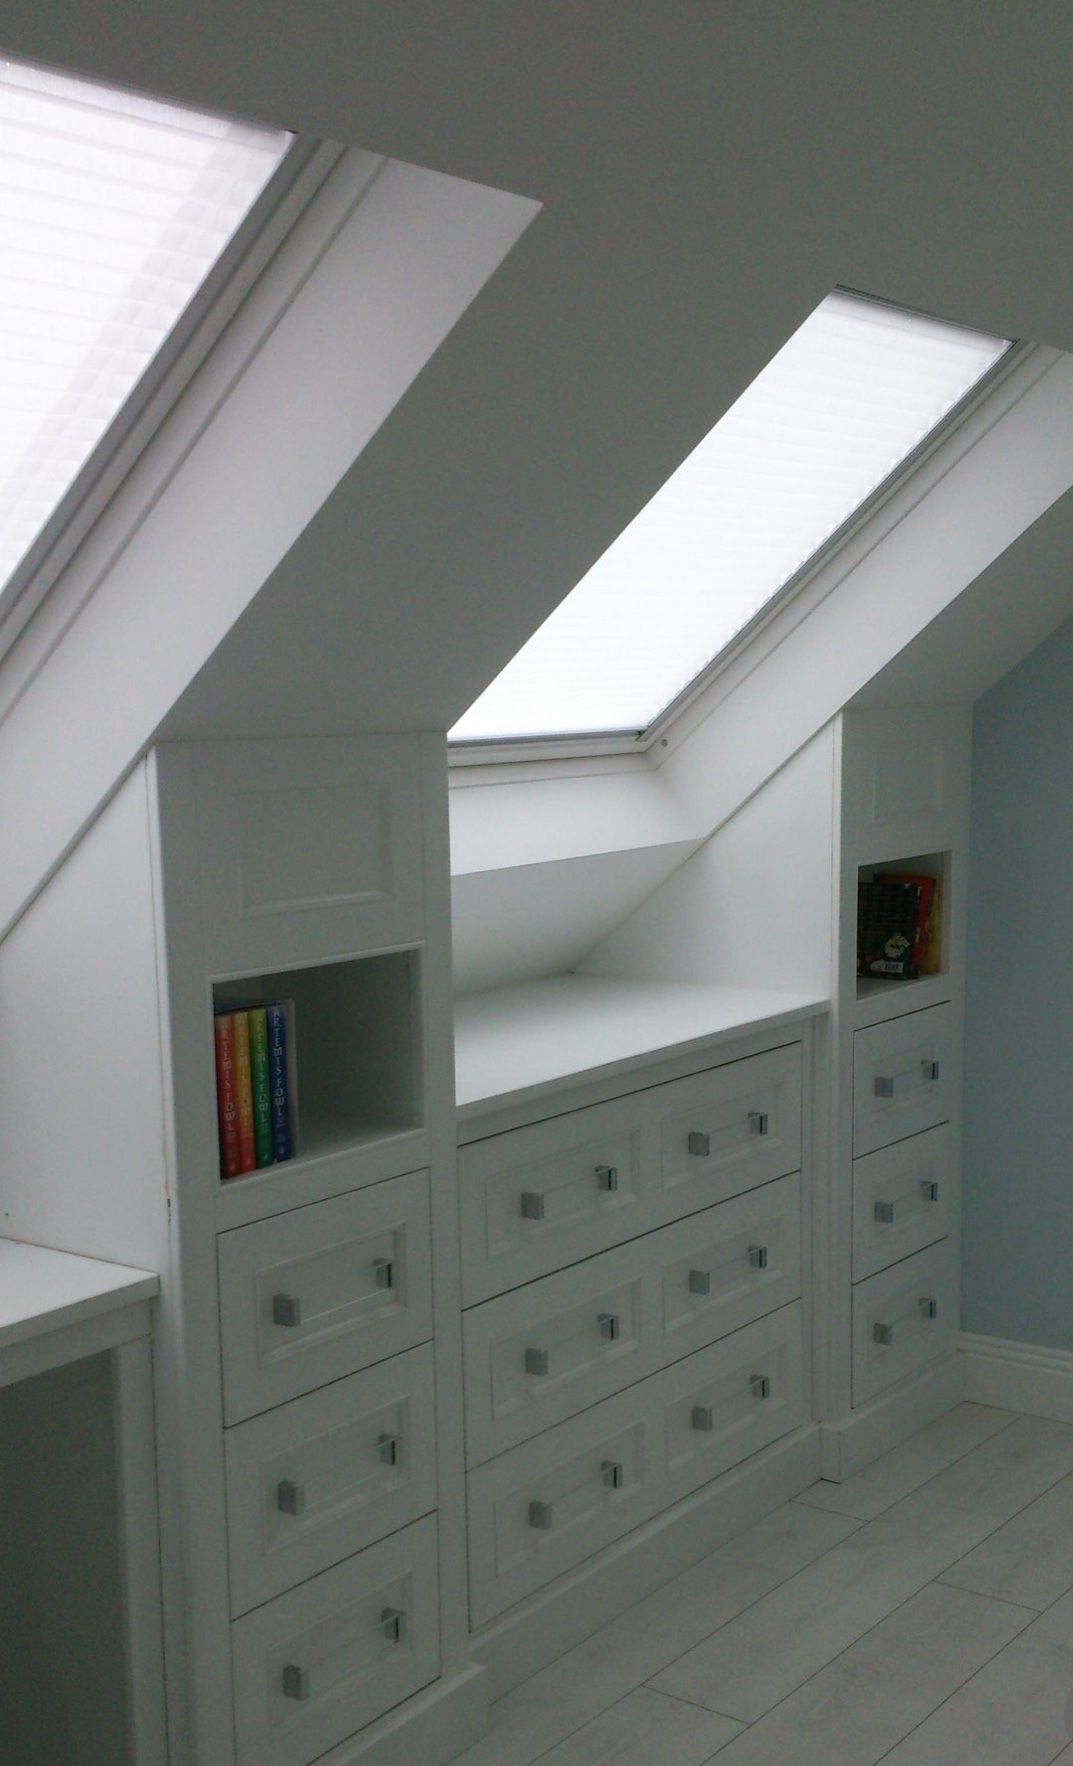 Loft bed ideas for low ceiling  Cleverly Increase Living Space By Making Use Of Unused Attic  home